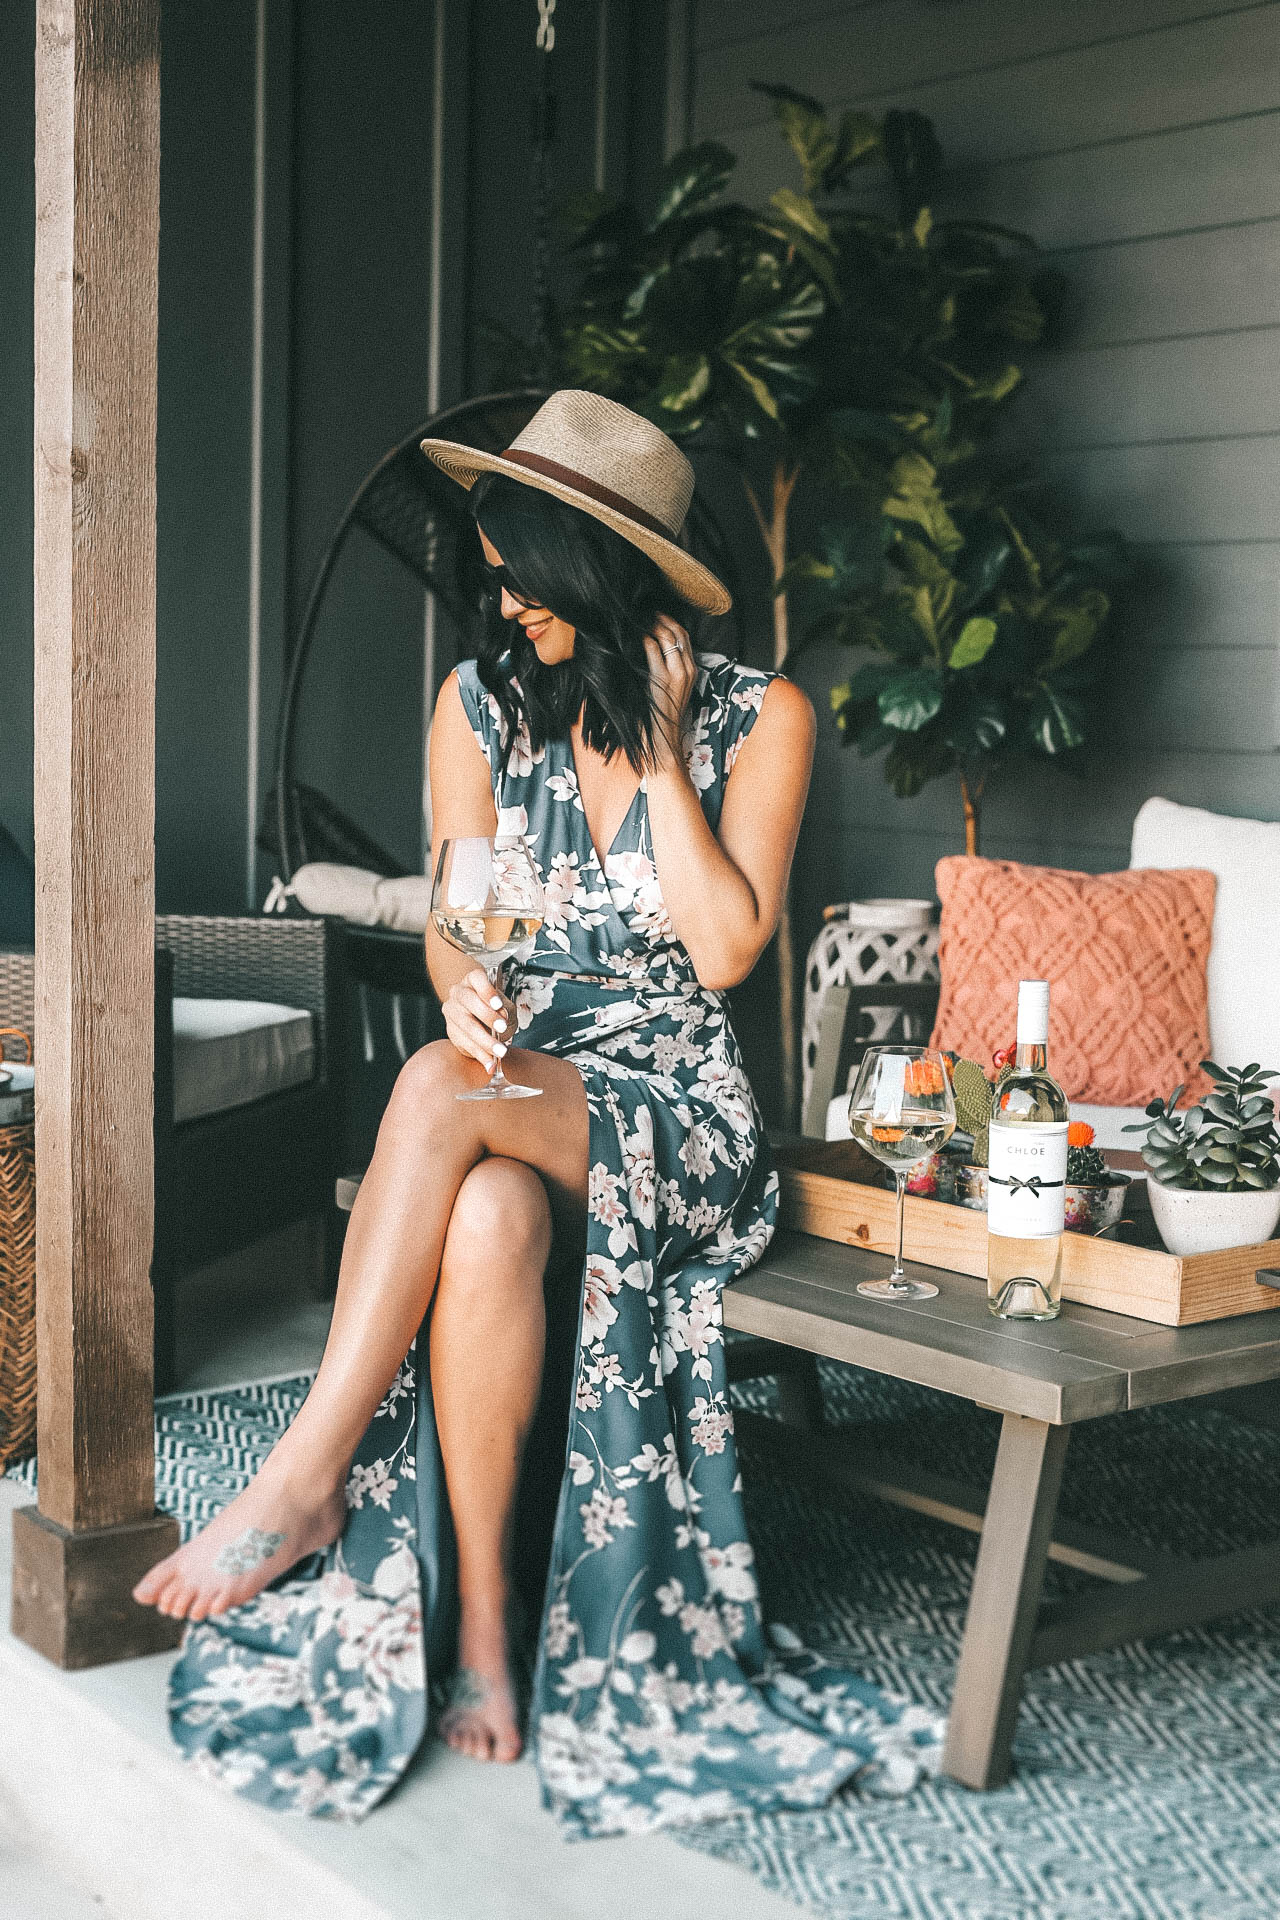 Celebrating Women in Film with Chloe Wine Collection by popular Austin life and style blog, Dressed to Kill: image of a woman sitting on an outdoor coffee table and holding a wine glass with Chloe pinot grigio wine in it with the Chloe wine bottle and another wine glass resting next to her.